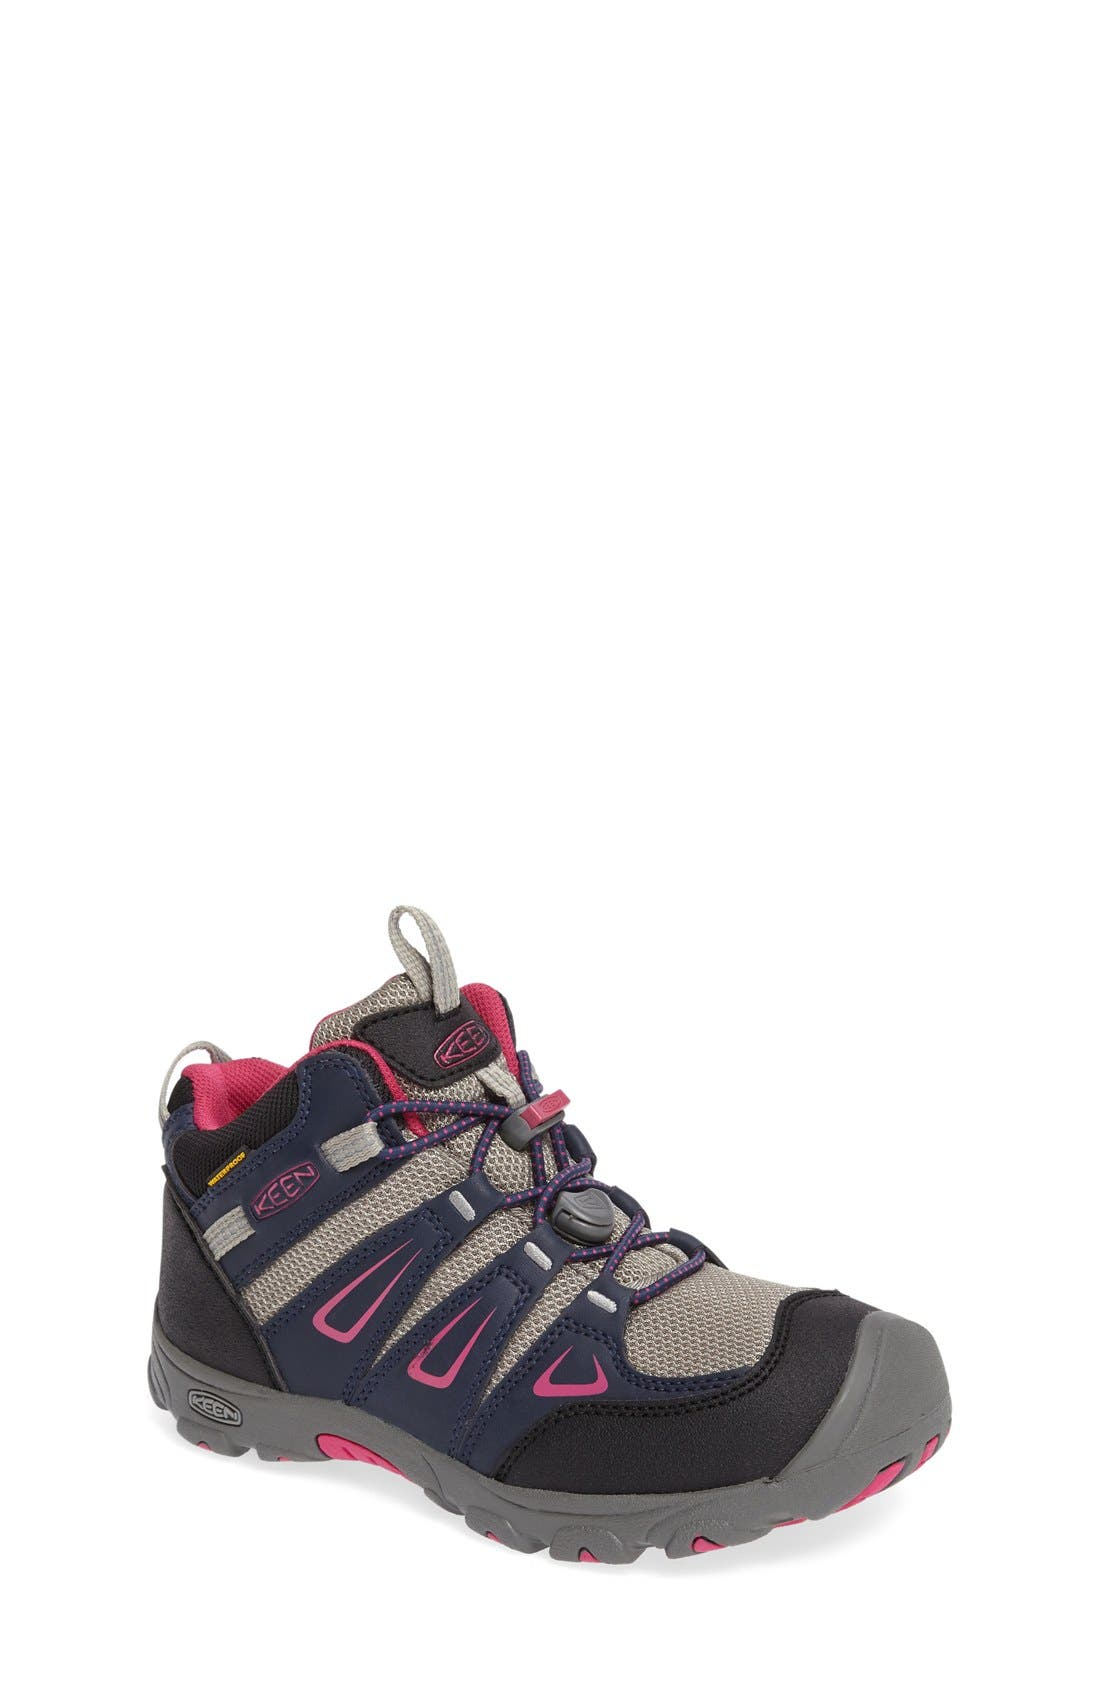 'Oakridge' Waterproof Hiking Boot,                         Main,                         color, Blue/ Berry